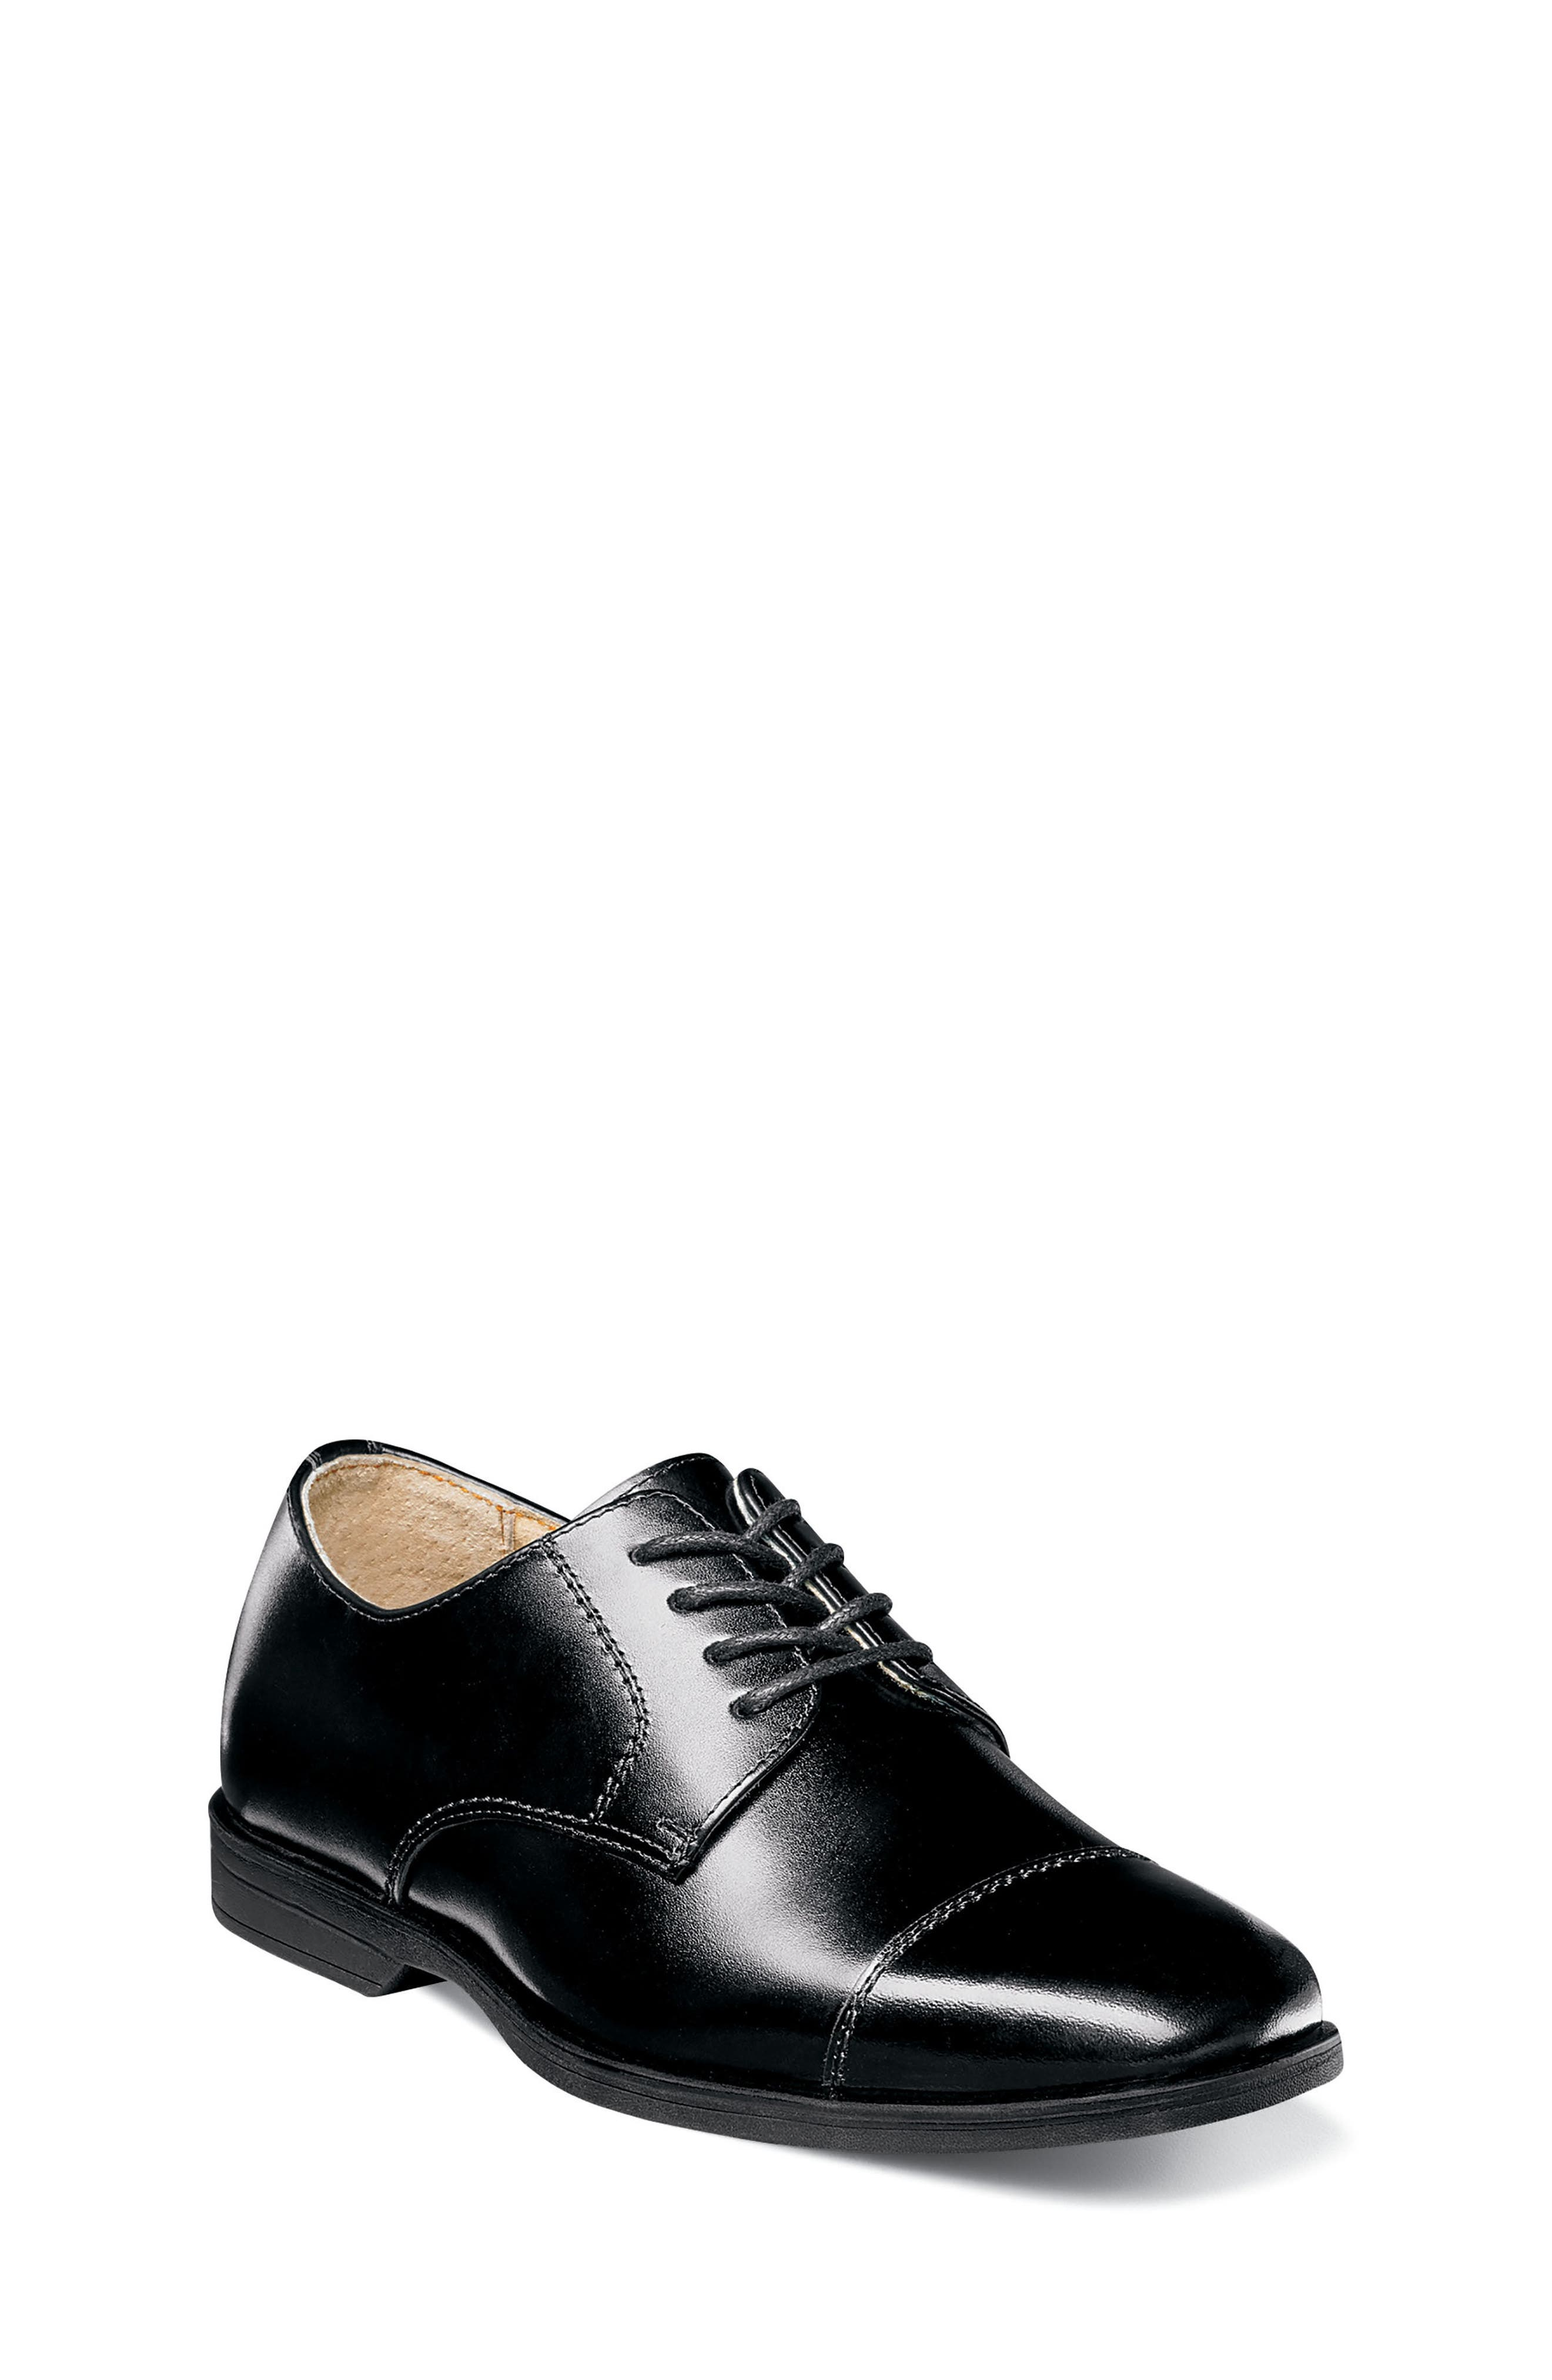 Florsheim Reveal Cap Toe Derby (Toddler, Little Kid & Big Kid)